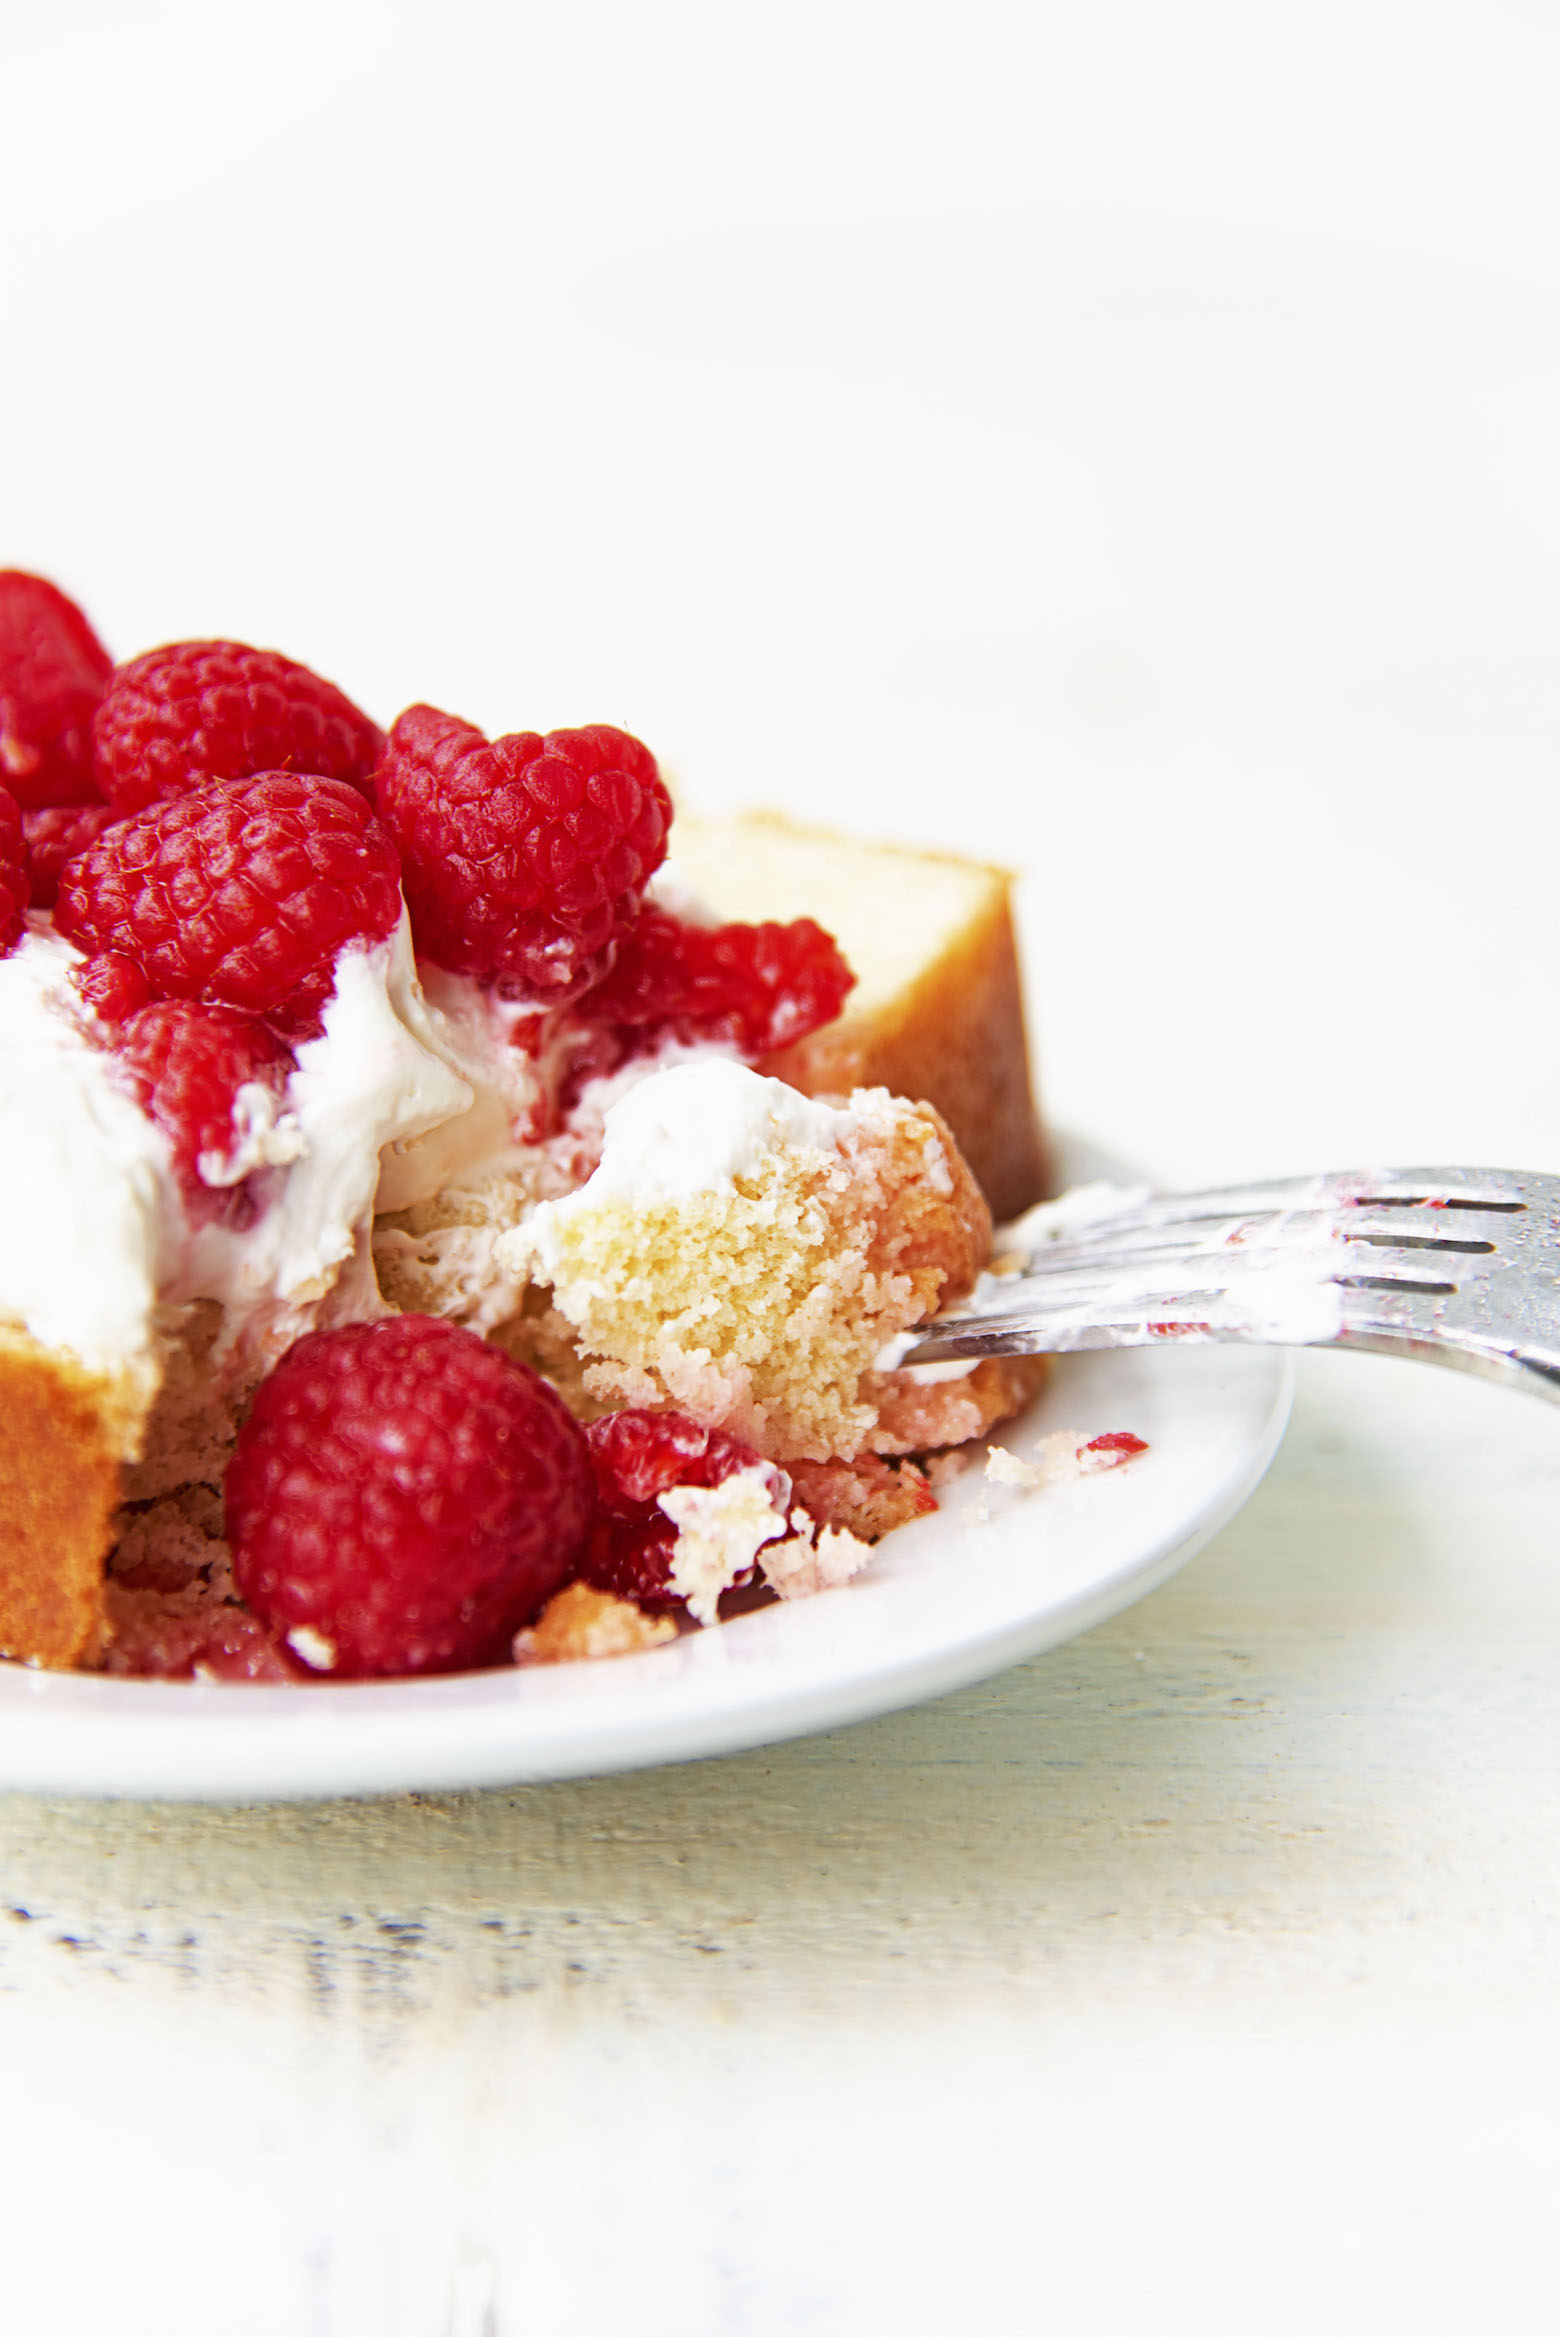 Vanilla Butter Loaf Cake with whipped cream and berries with a fork taking out a bite.